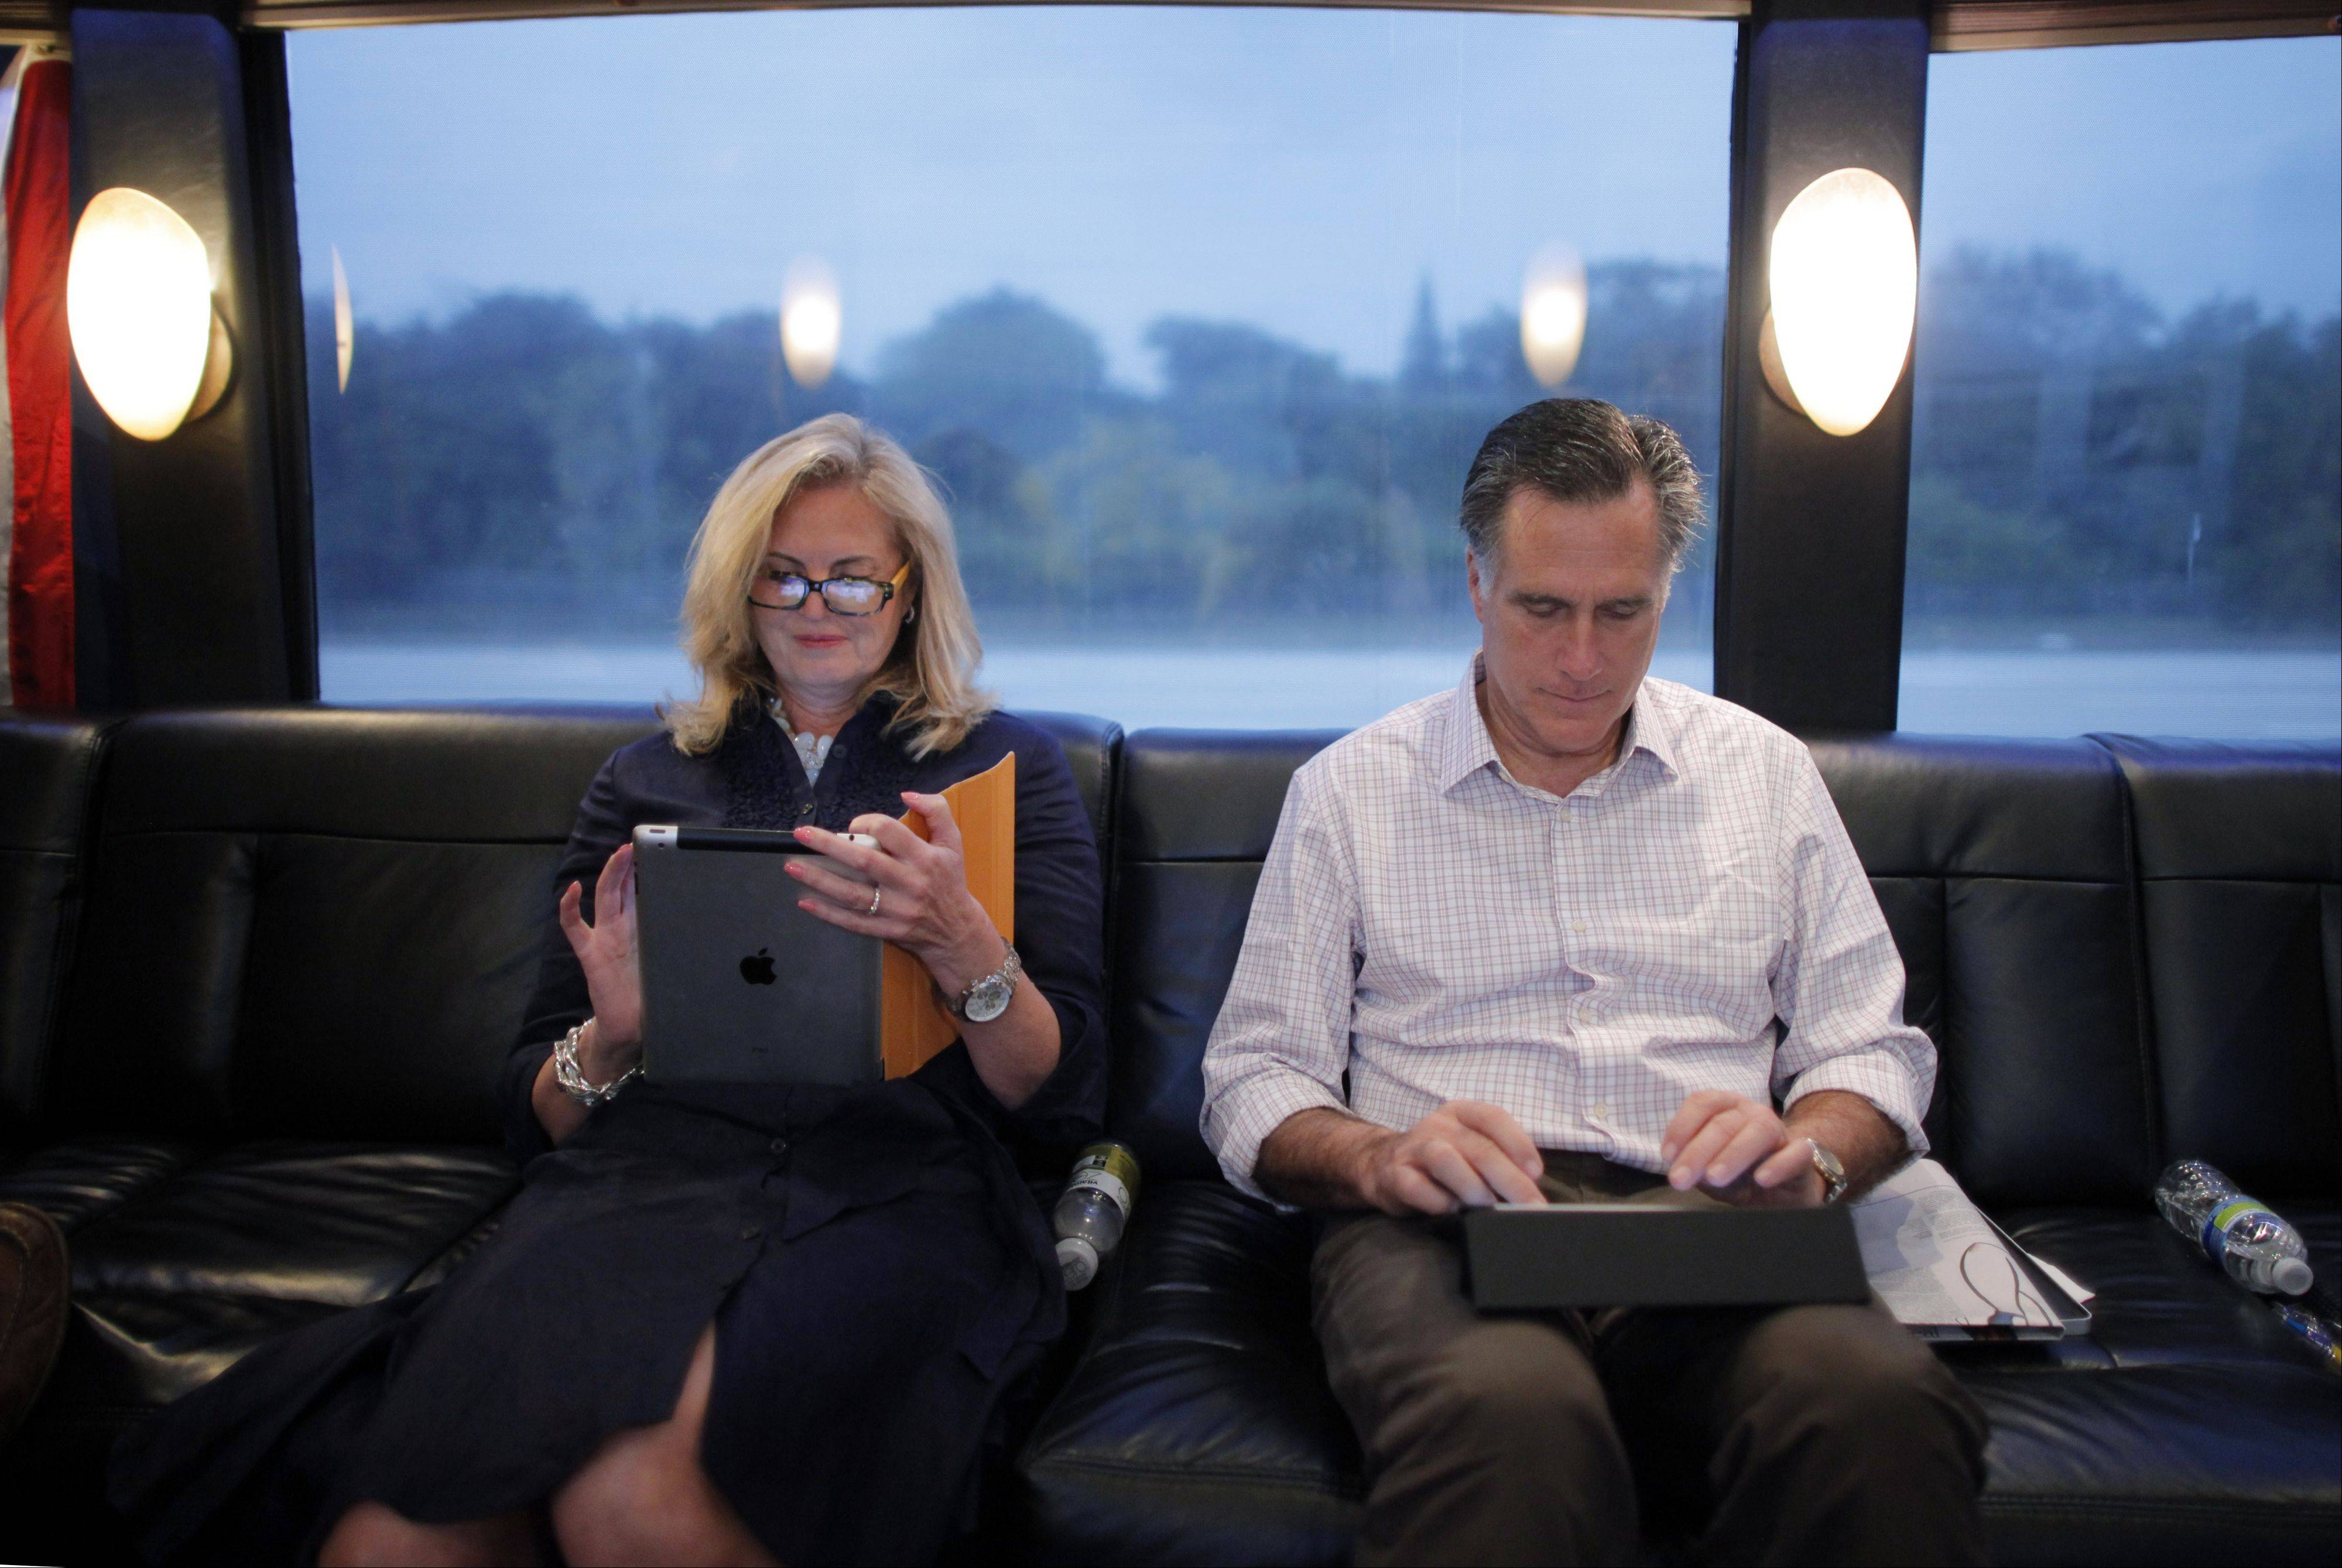 In this Jan. 29, 2012, file photo, Republican presidential candidate, former Massachusetts Gov. Mitt Romney, and his wife Ann work on their iPads on their campaign bus as it travels to Hialeah, Fla.